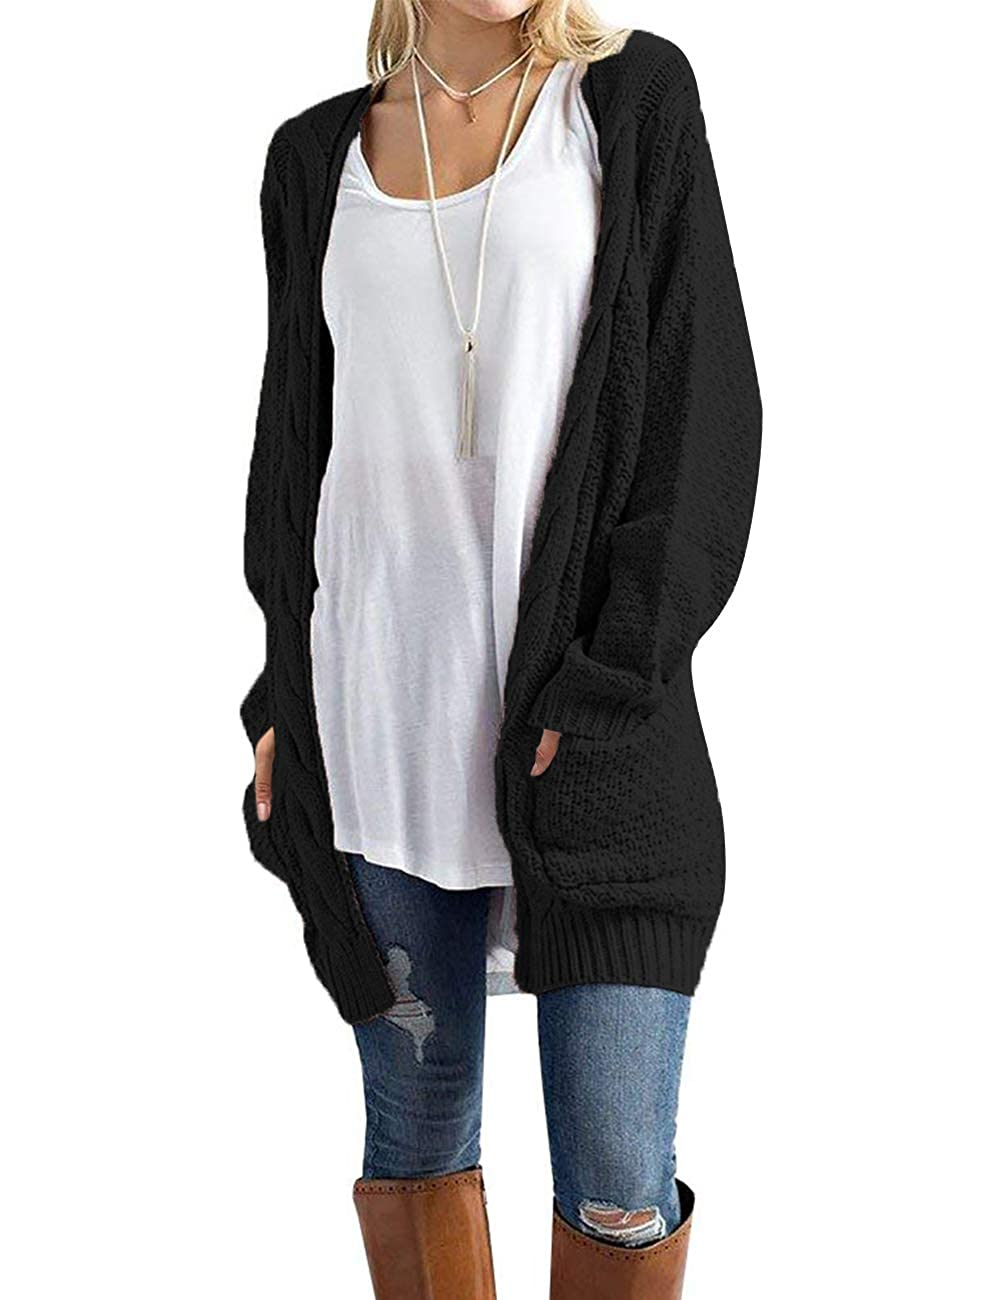 09dc6f9f11 OmicGot Women s Long Sleeve Open Front Chunky Cable Knit Loose Cardigan  Sweater at Amazon Women s Clothing store